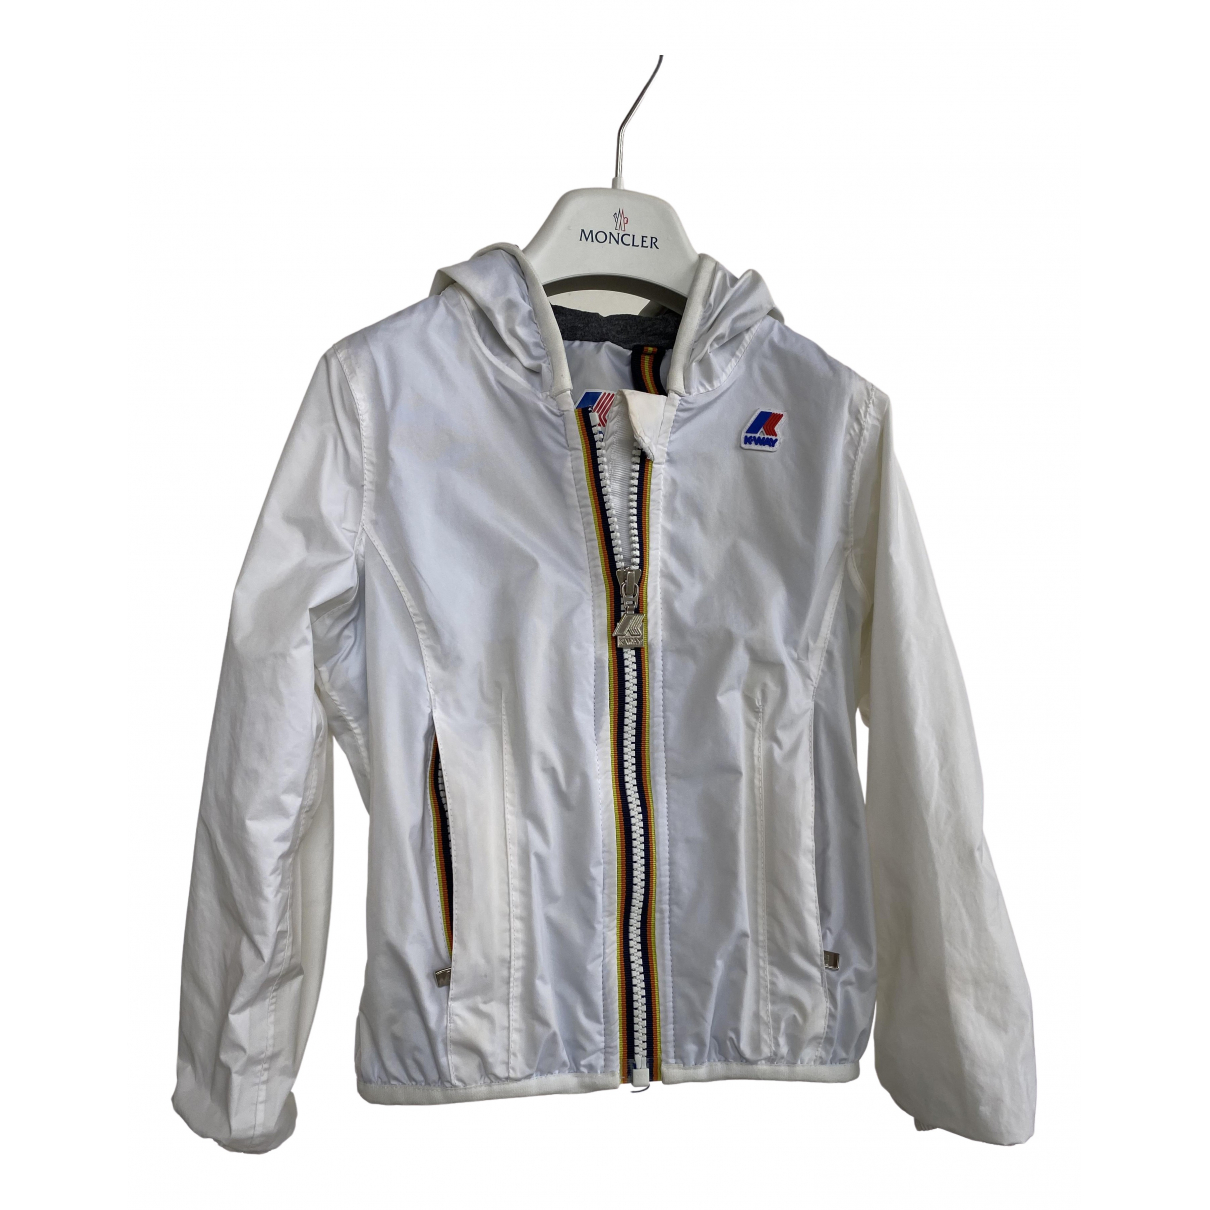 K-way N White jacket & coat for Kids 4 years - up to 102cm FR